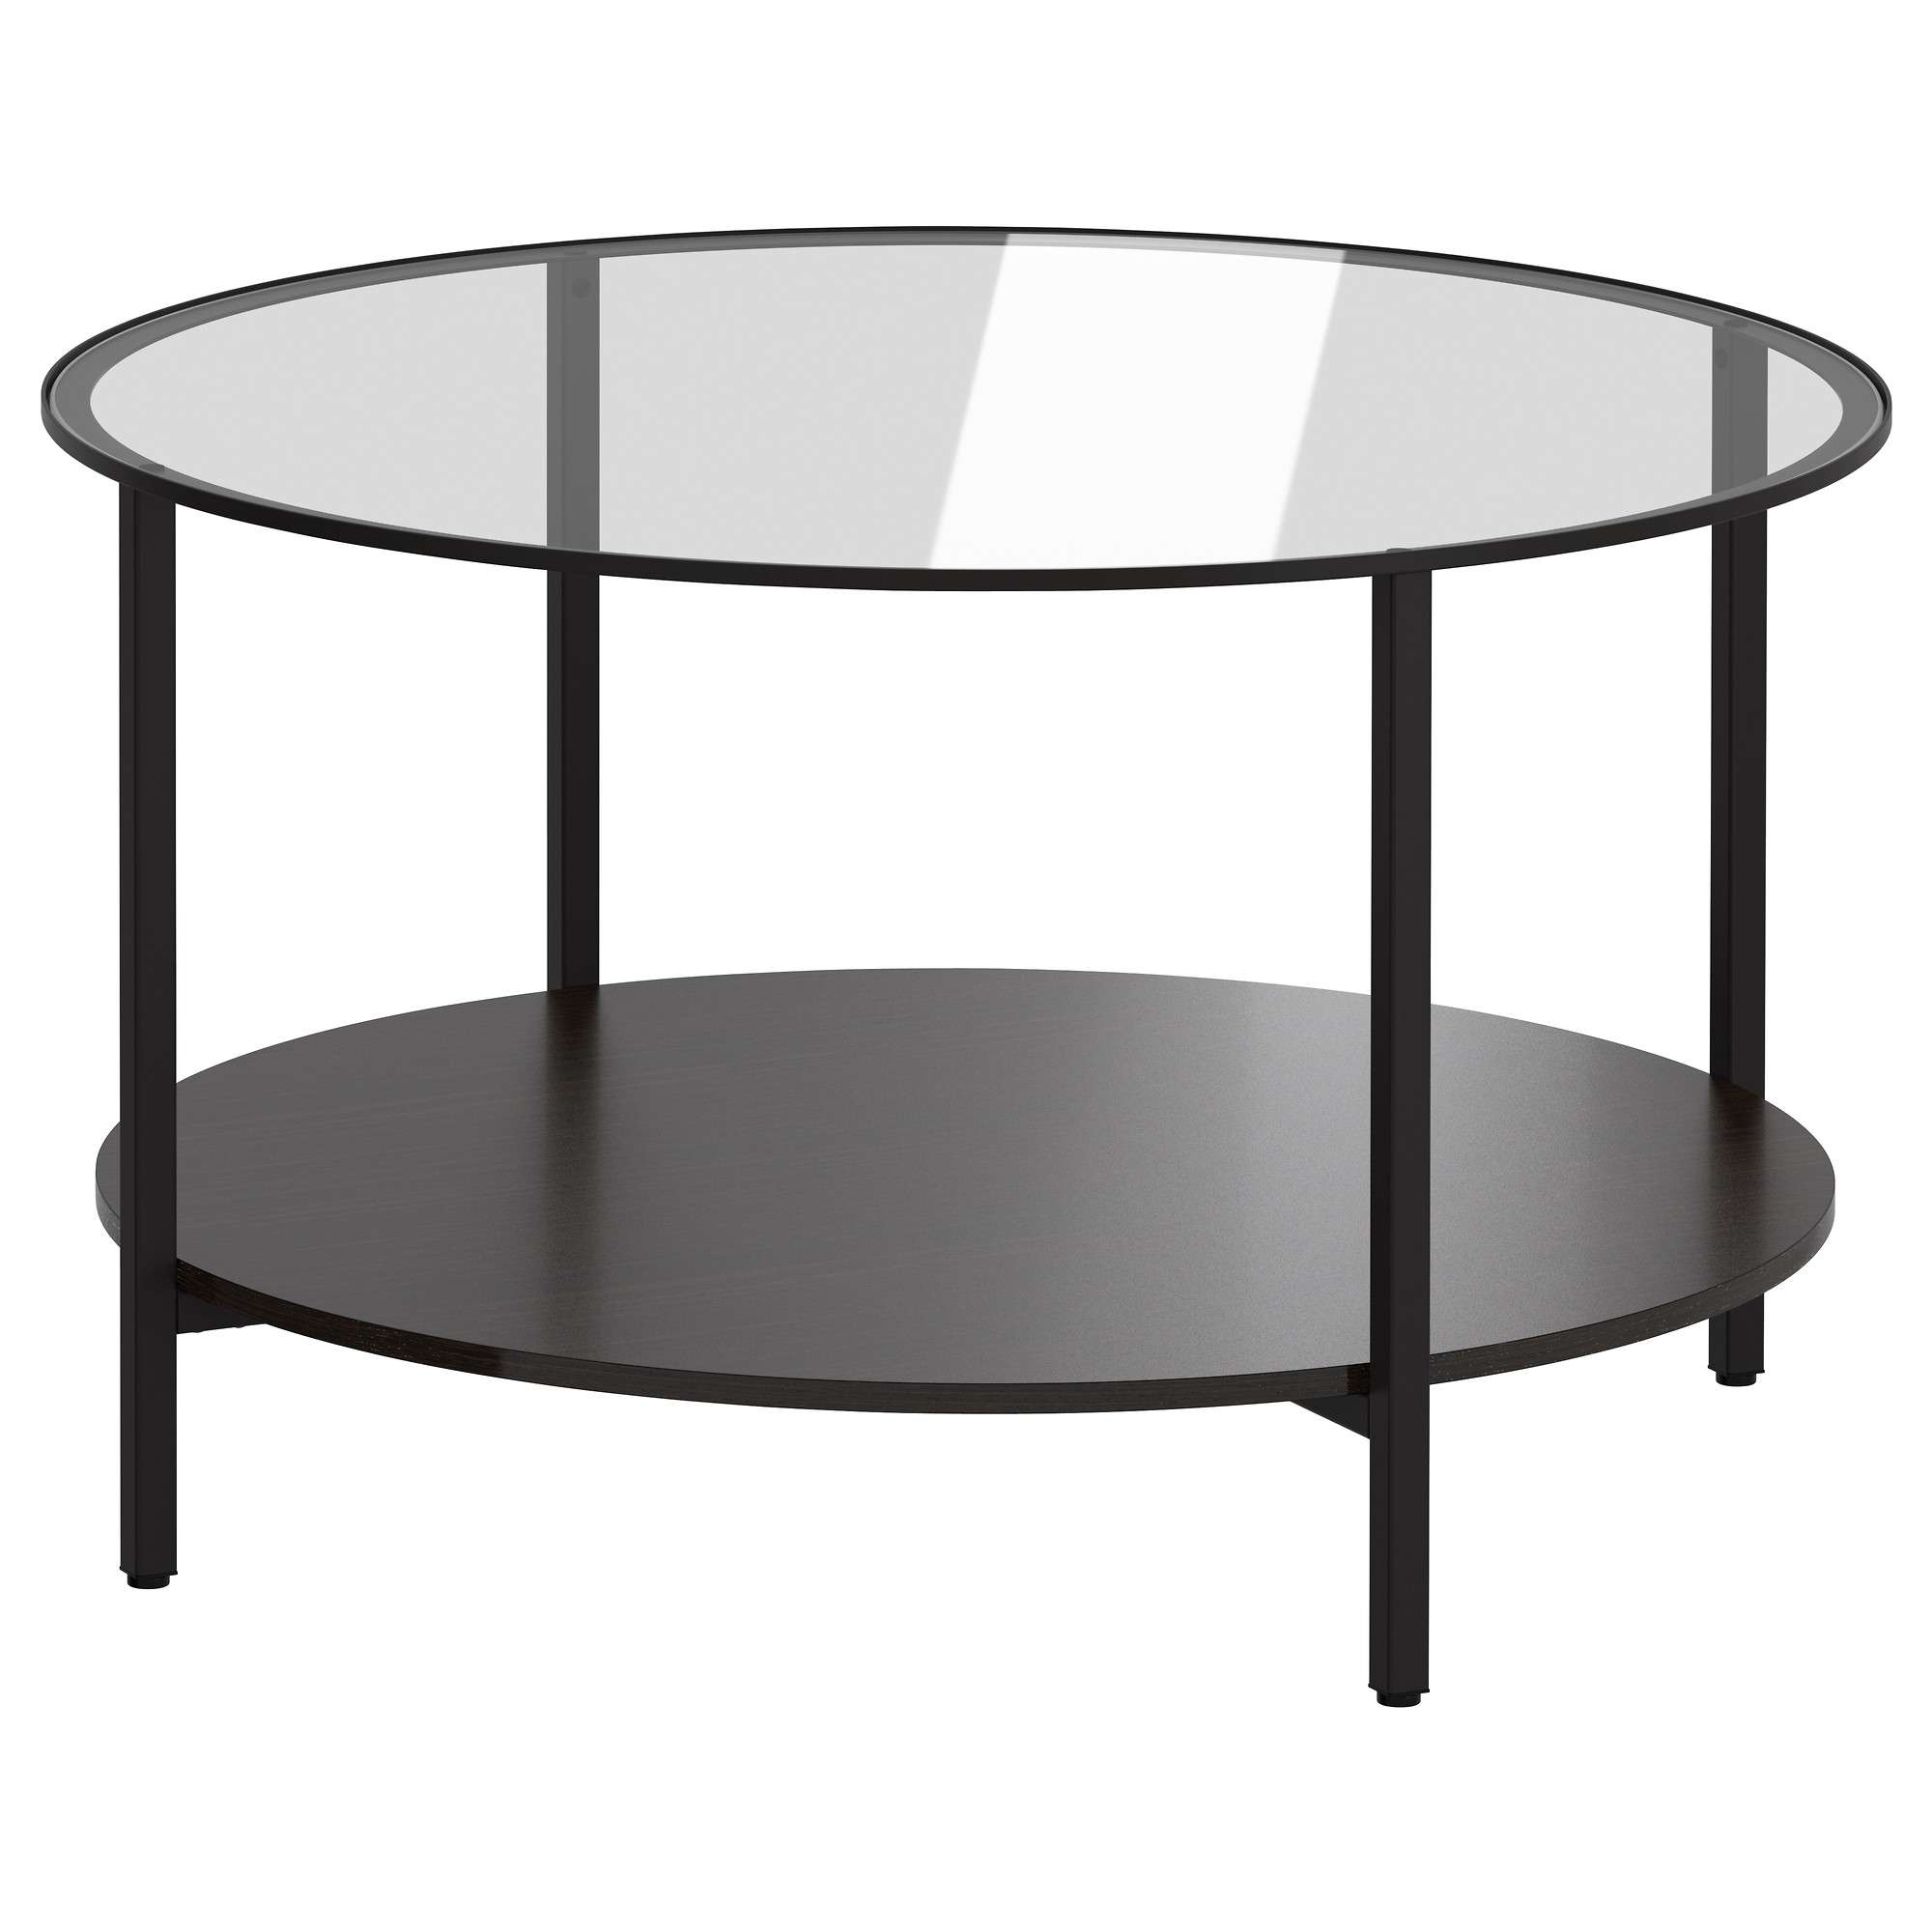 Vittsjö Coffee Table – Black Brown/glass – Ikea In Latest Dark Glass Coffee Tables (View 19 of 20)